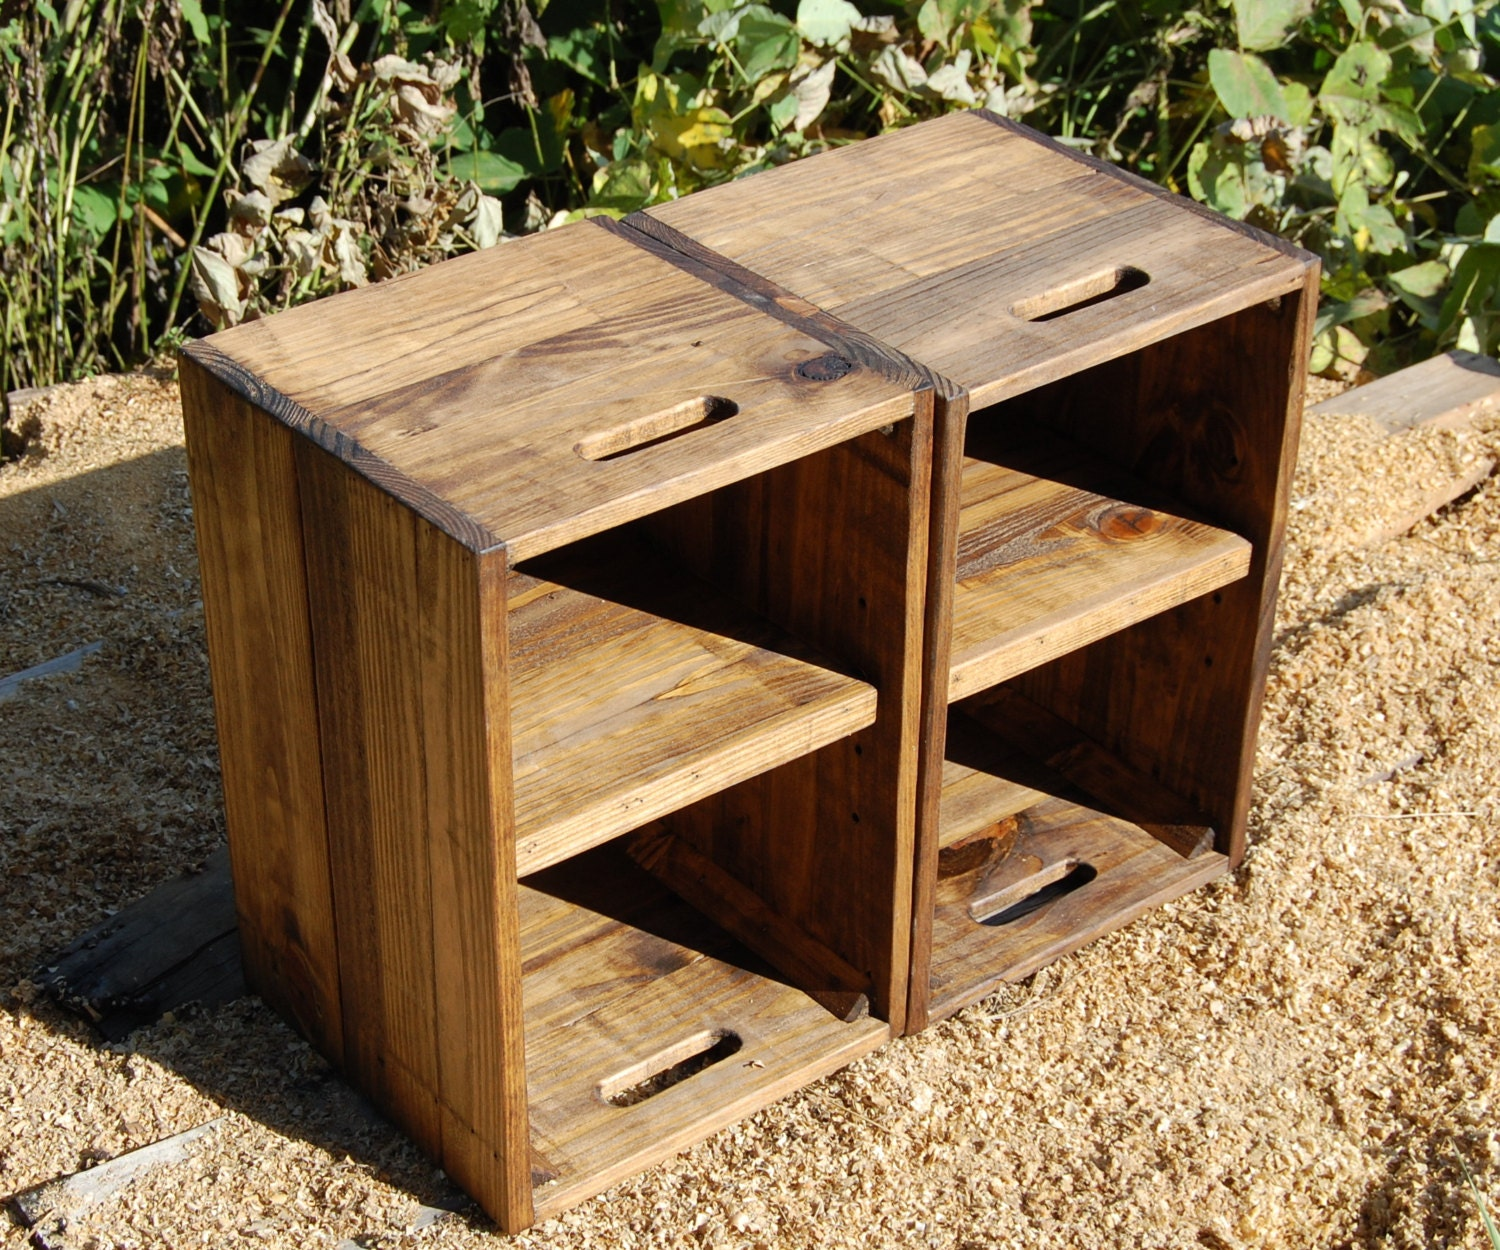 Wooden crates nightstand pair of side tables reclaim wood